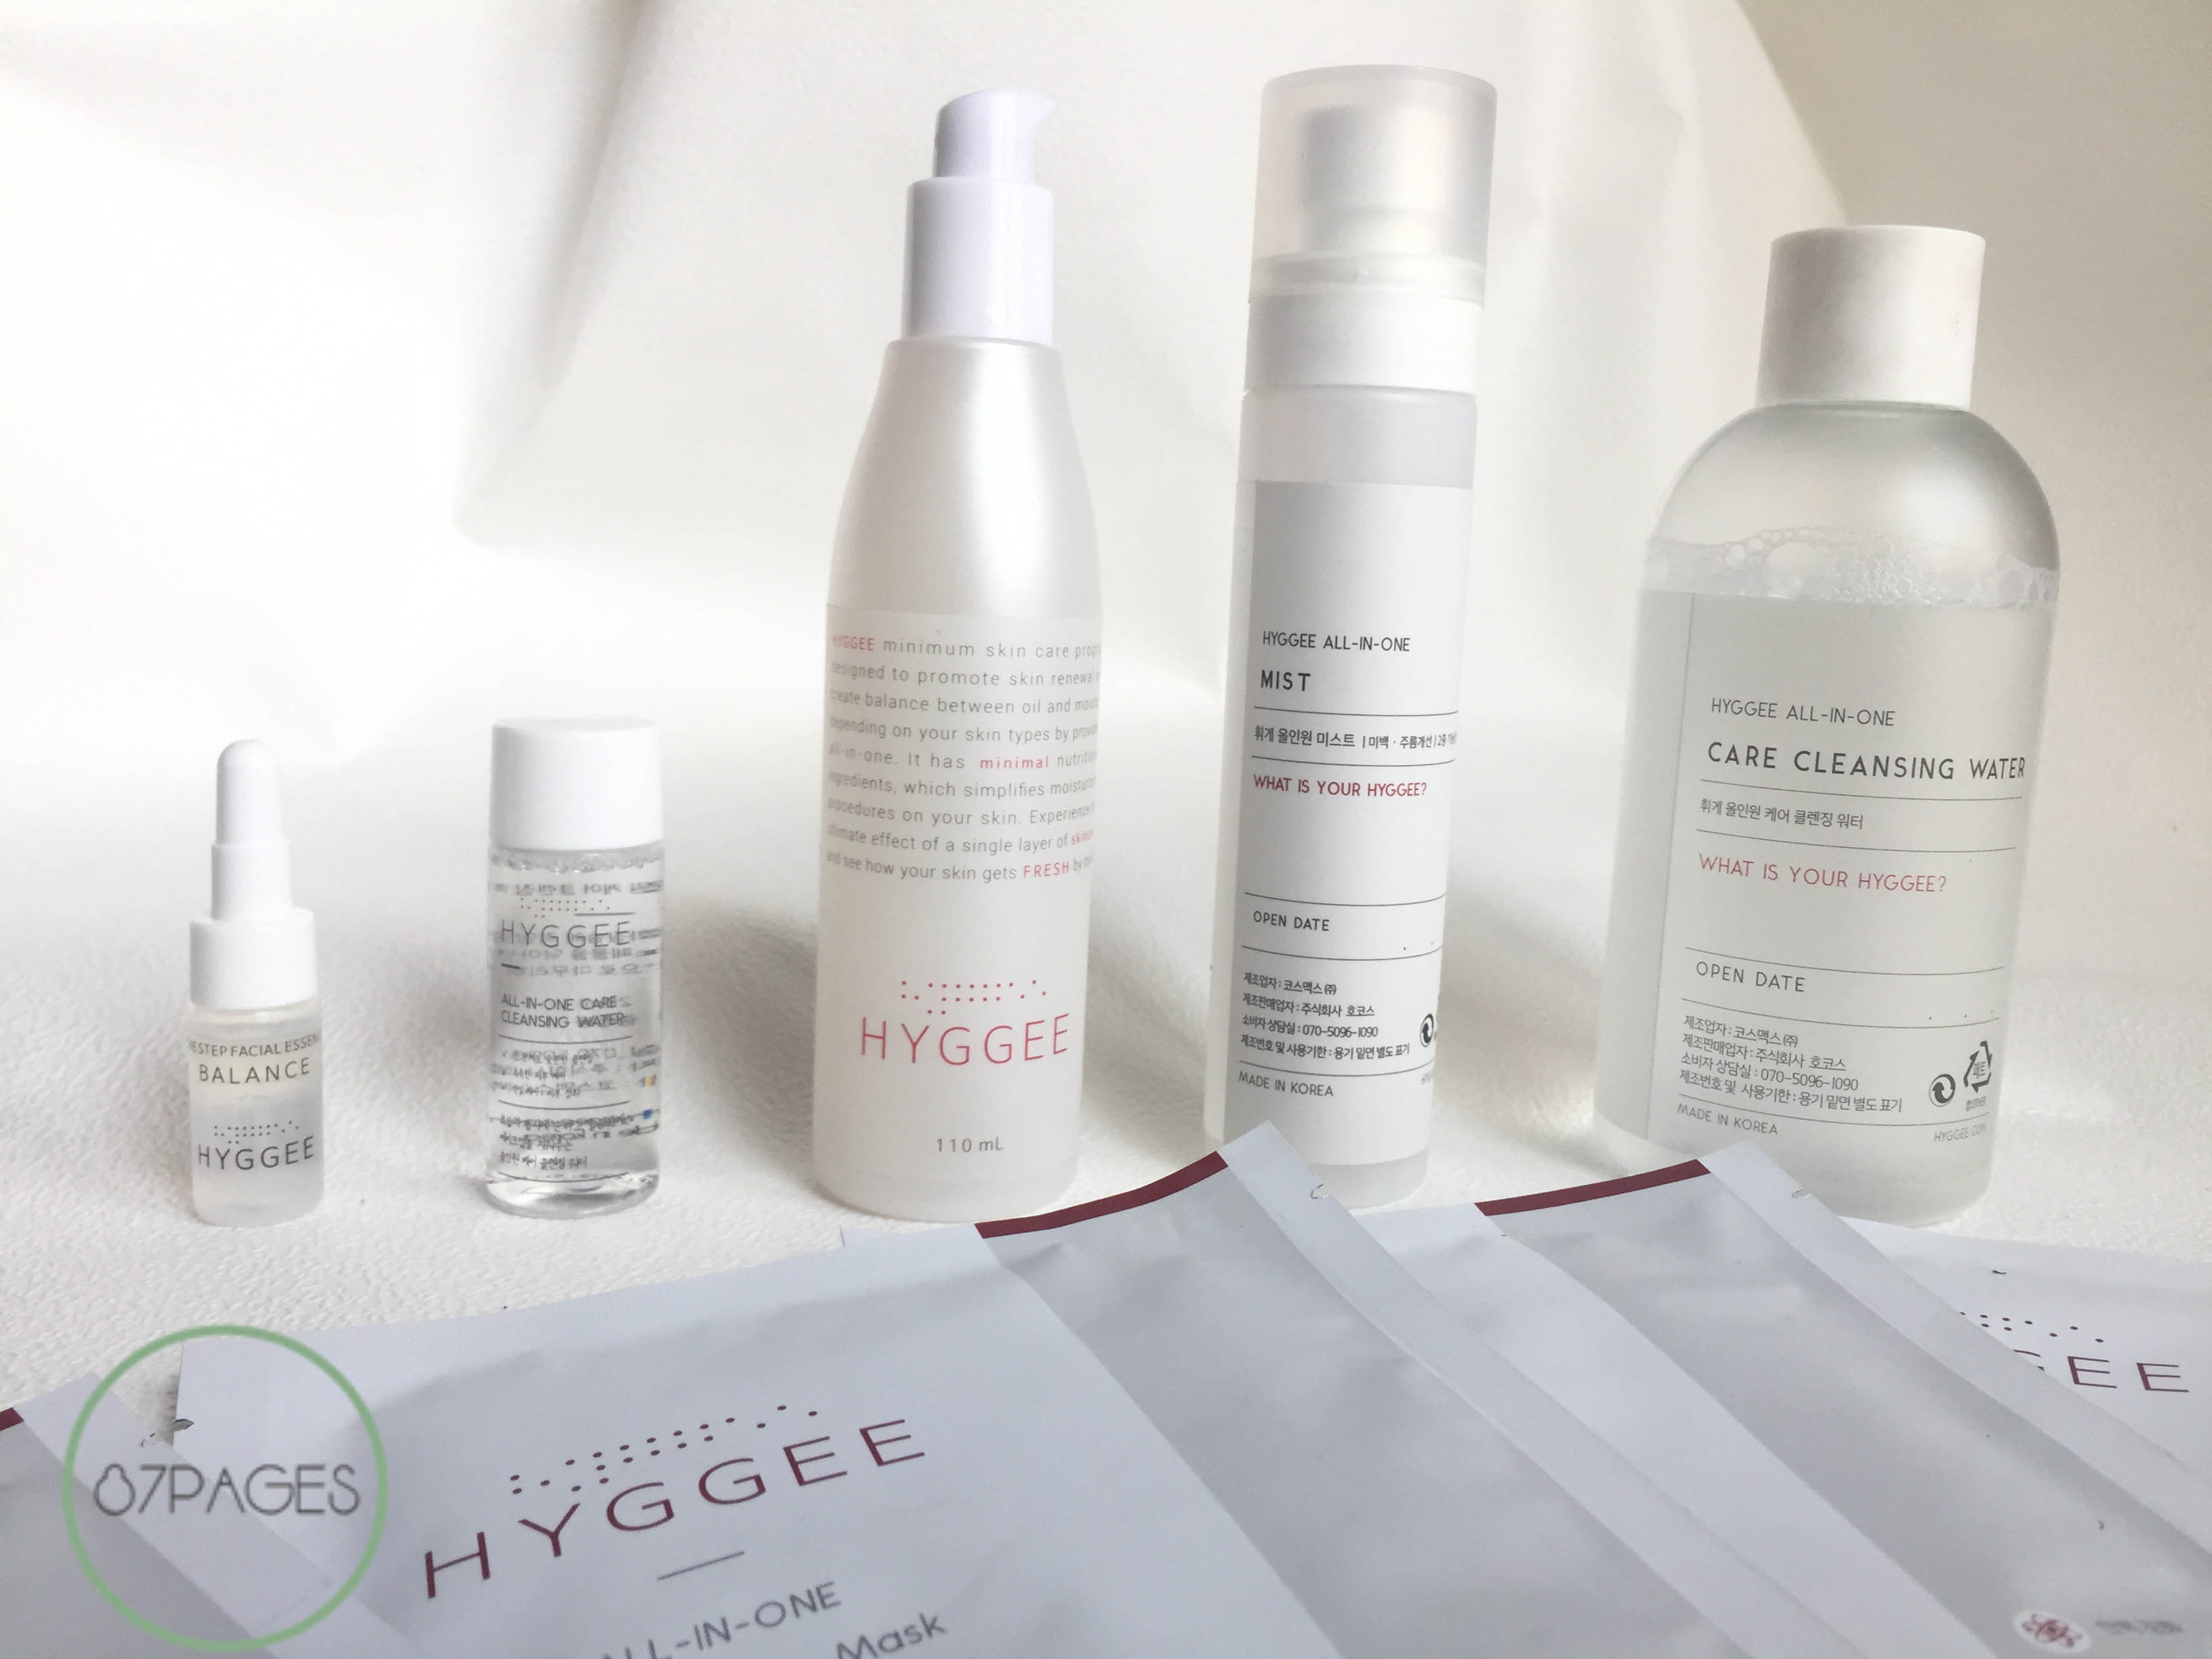 Today I'm sharing my Korean beauty haul and review of the innovating brand HYGGEE, which has helped me create a Minimal Korean Skincare Routine